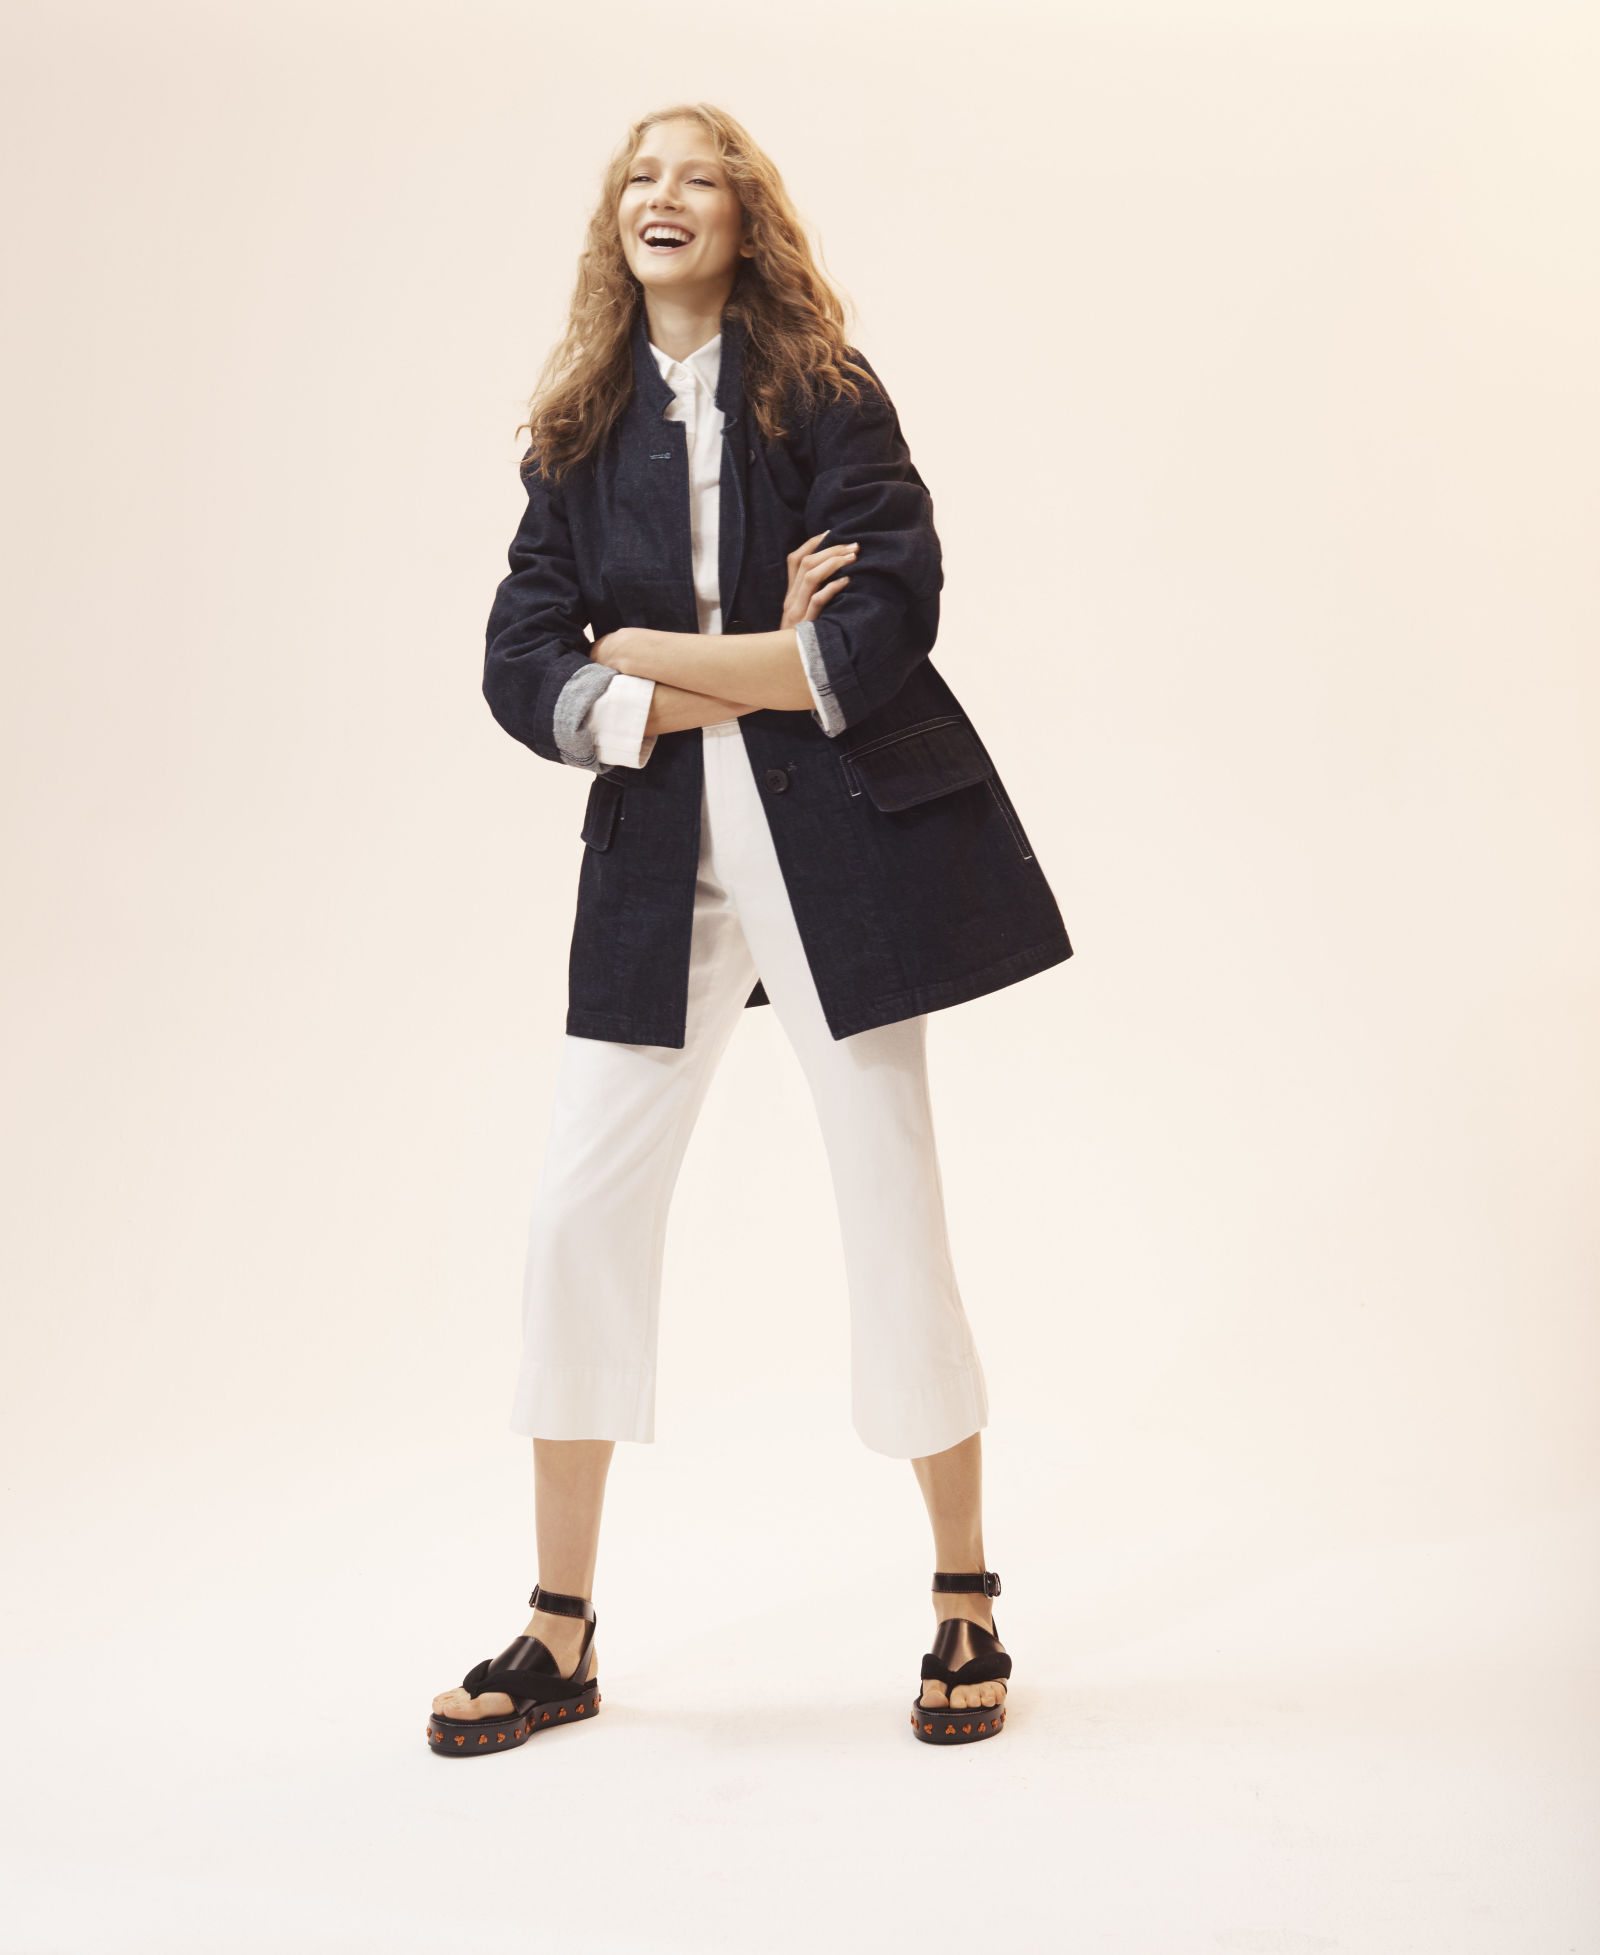 "<a href=""http://www.elle.com/fashion/shopping/a43550/christophe-lemaire-uniqlo-u/"" target=""_Blank"">ELLE</a>"